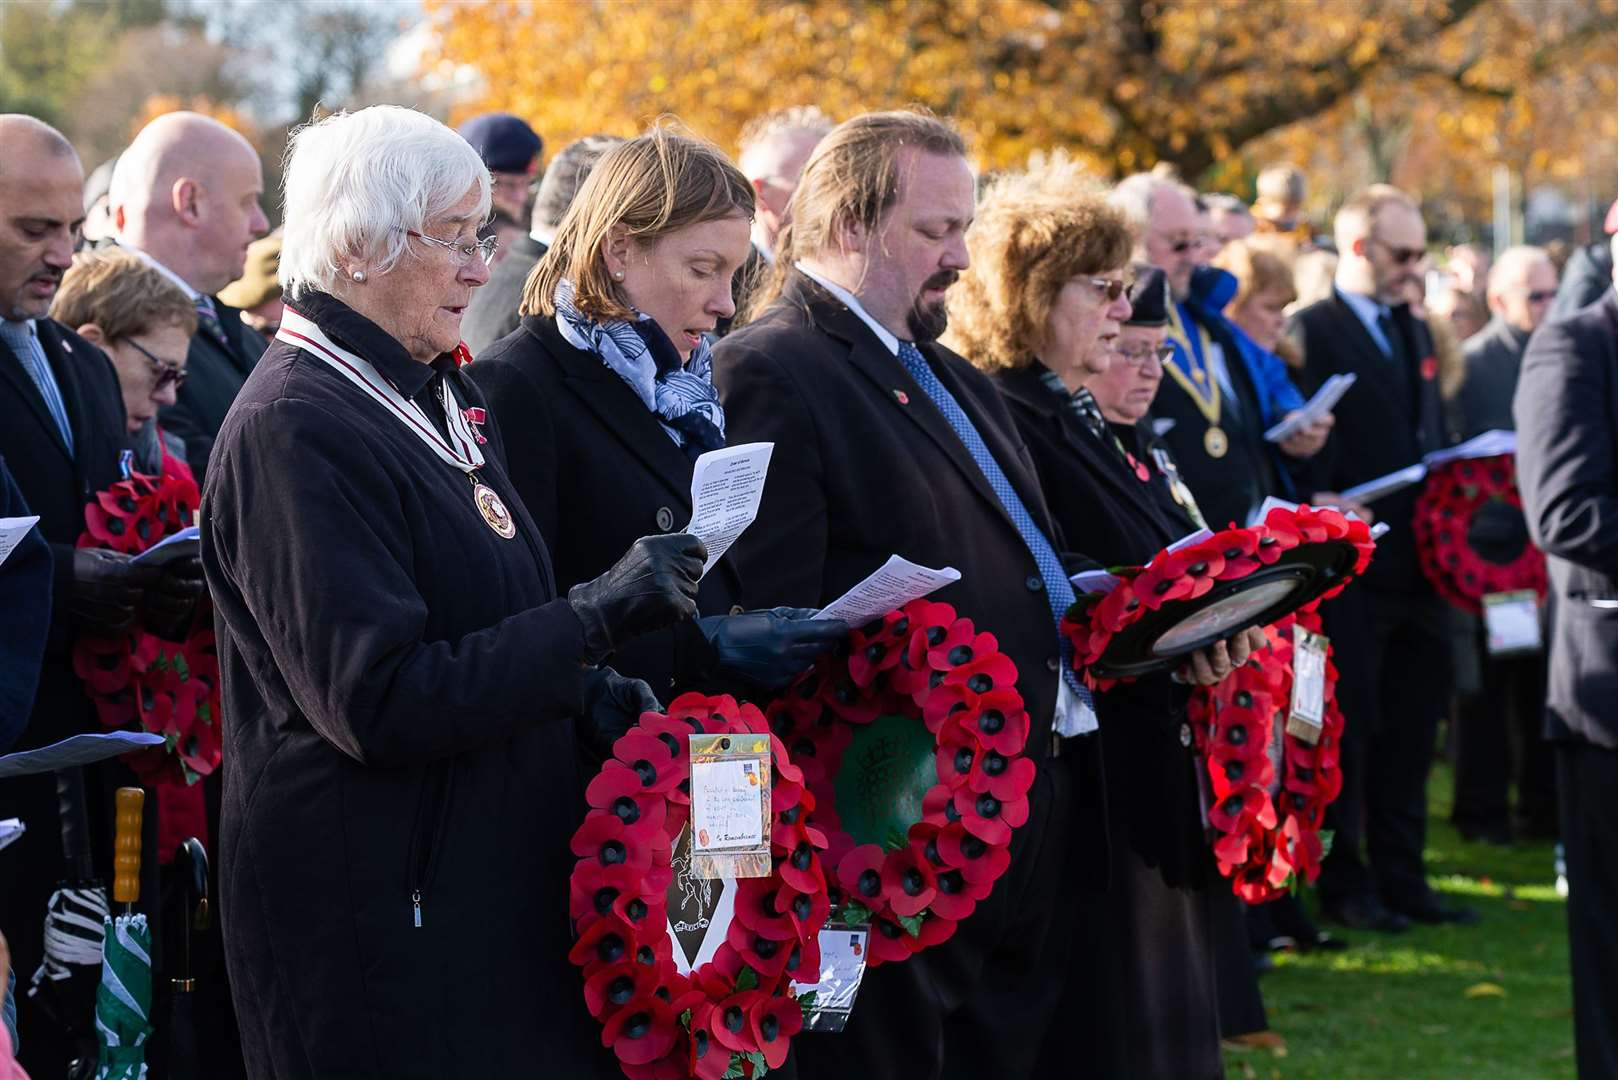 Remembrance Day service in Chatham in previous years - the commemoration event in 2020 has been cancelled